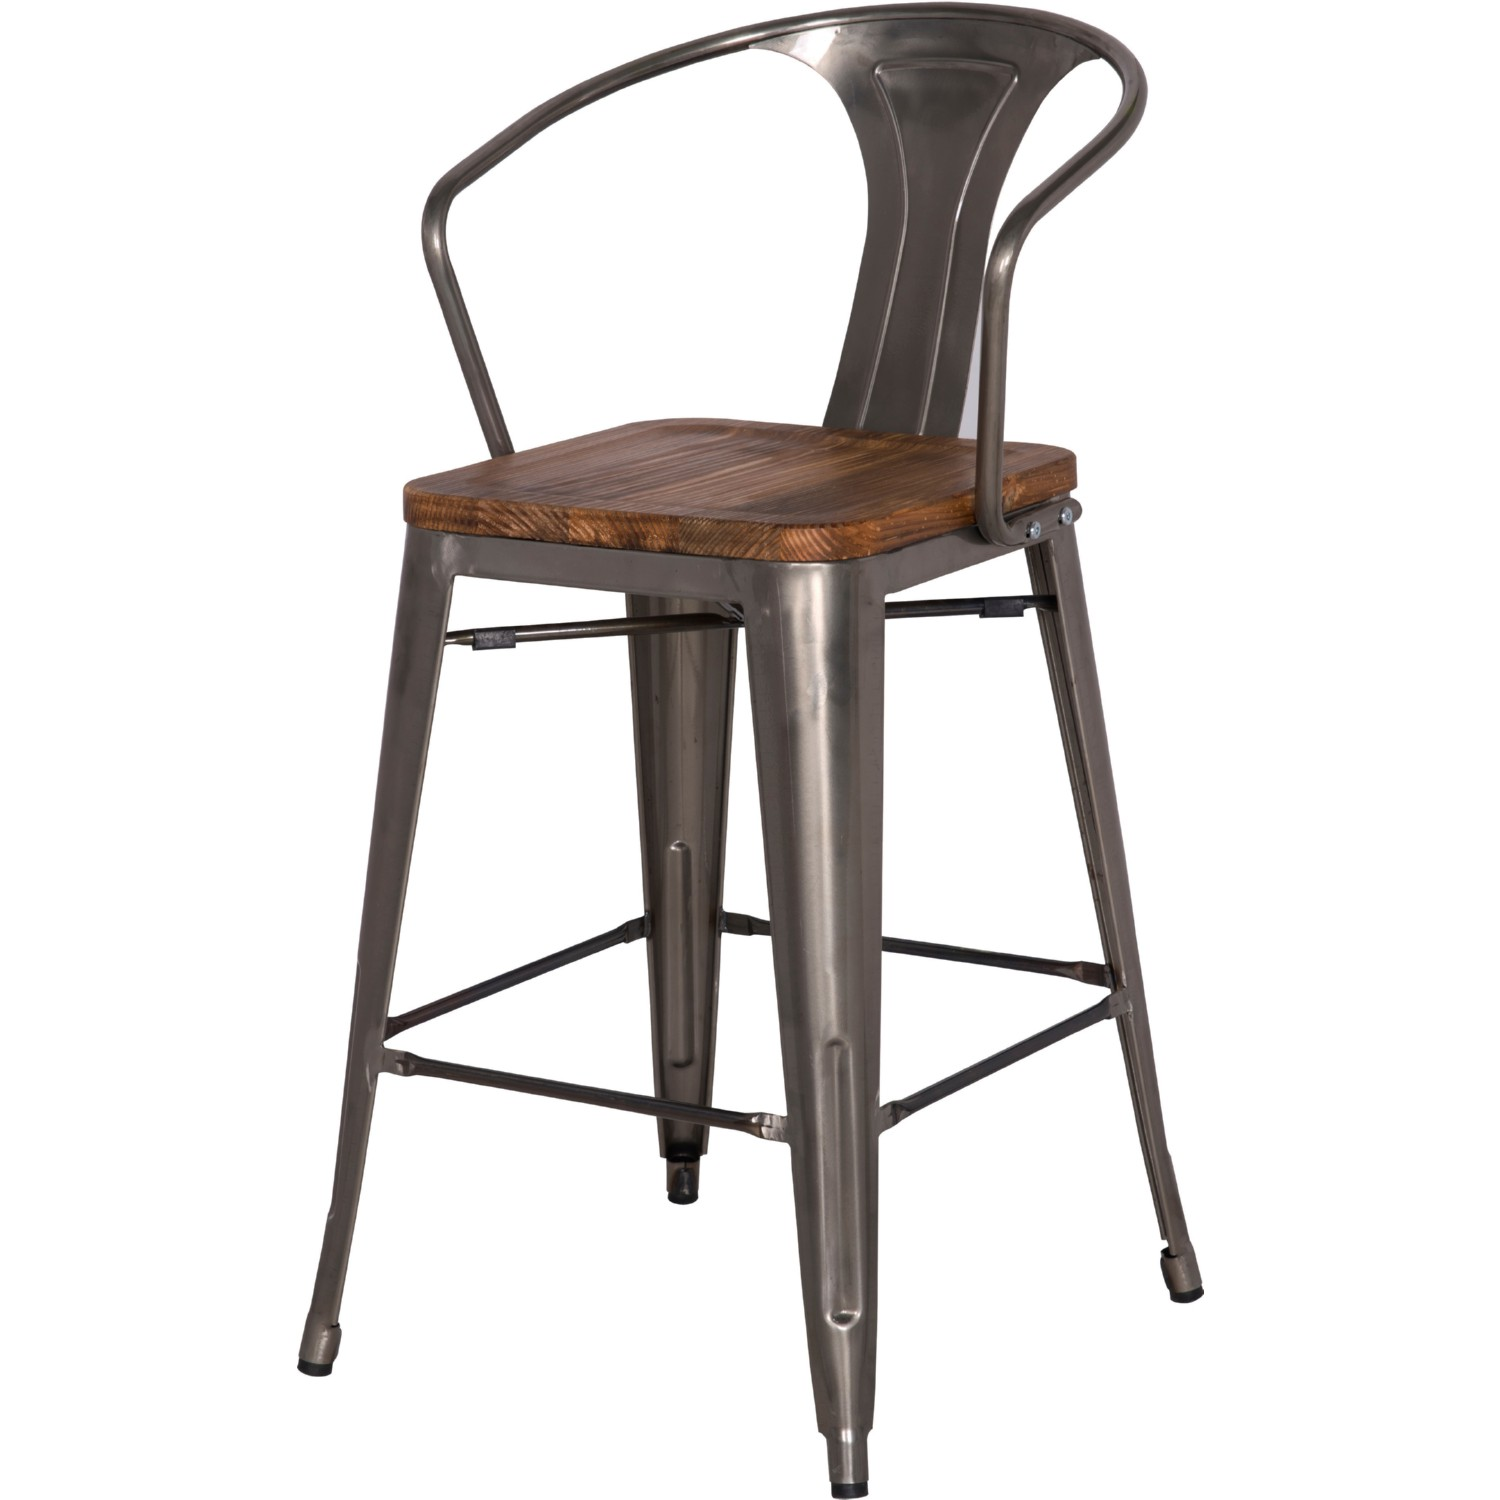 Npd 938544 Gm Metropolis Metal Bar Stool Wood Seat In Gunmetal Powder Coated Steel Set Of 4